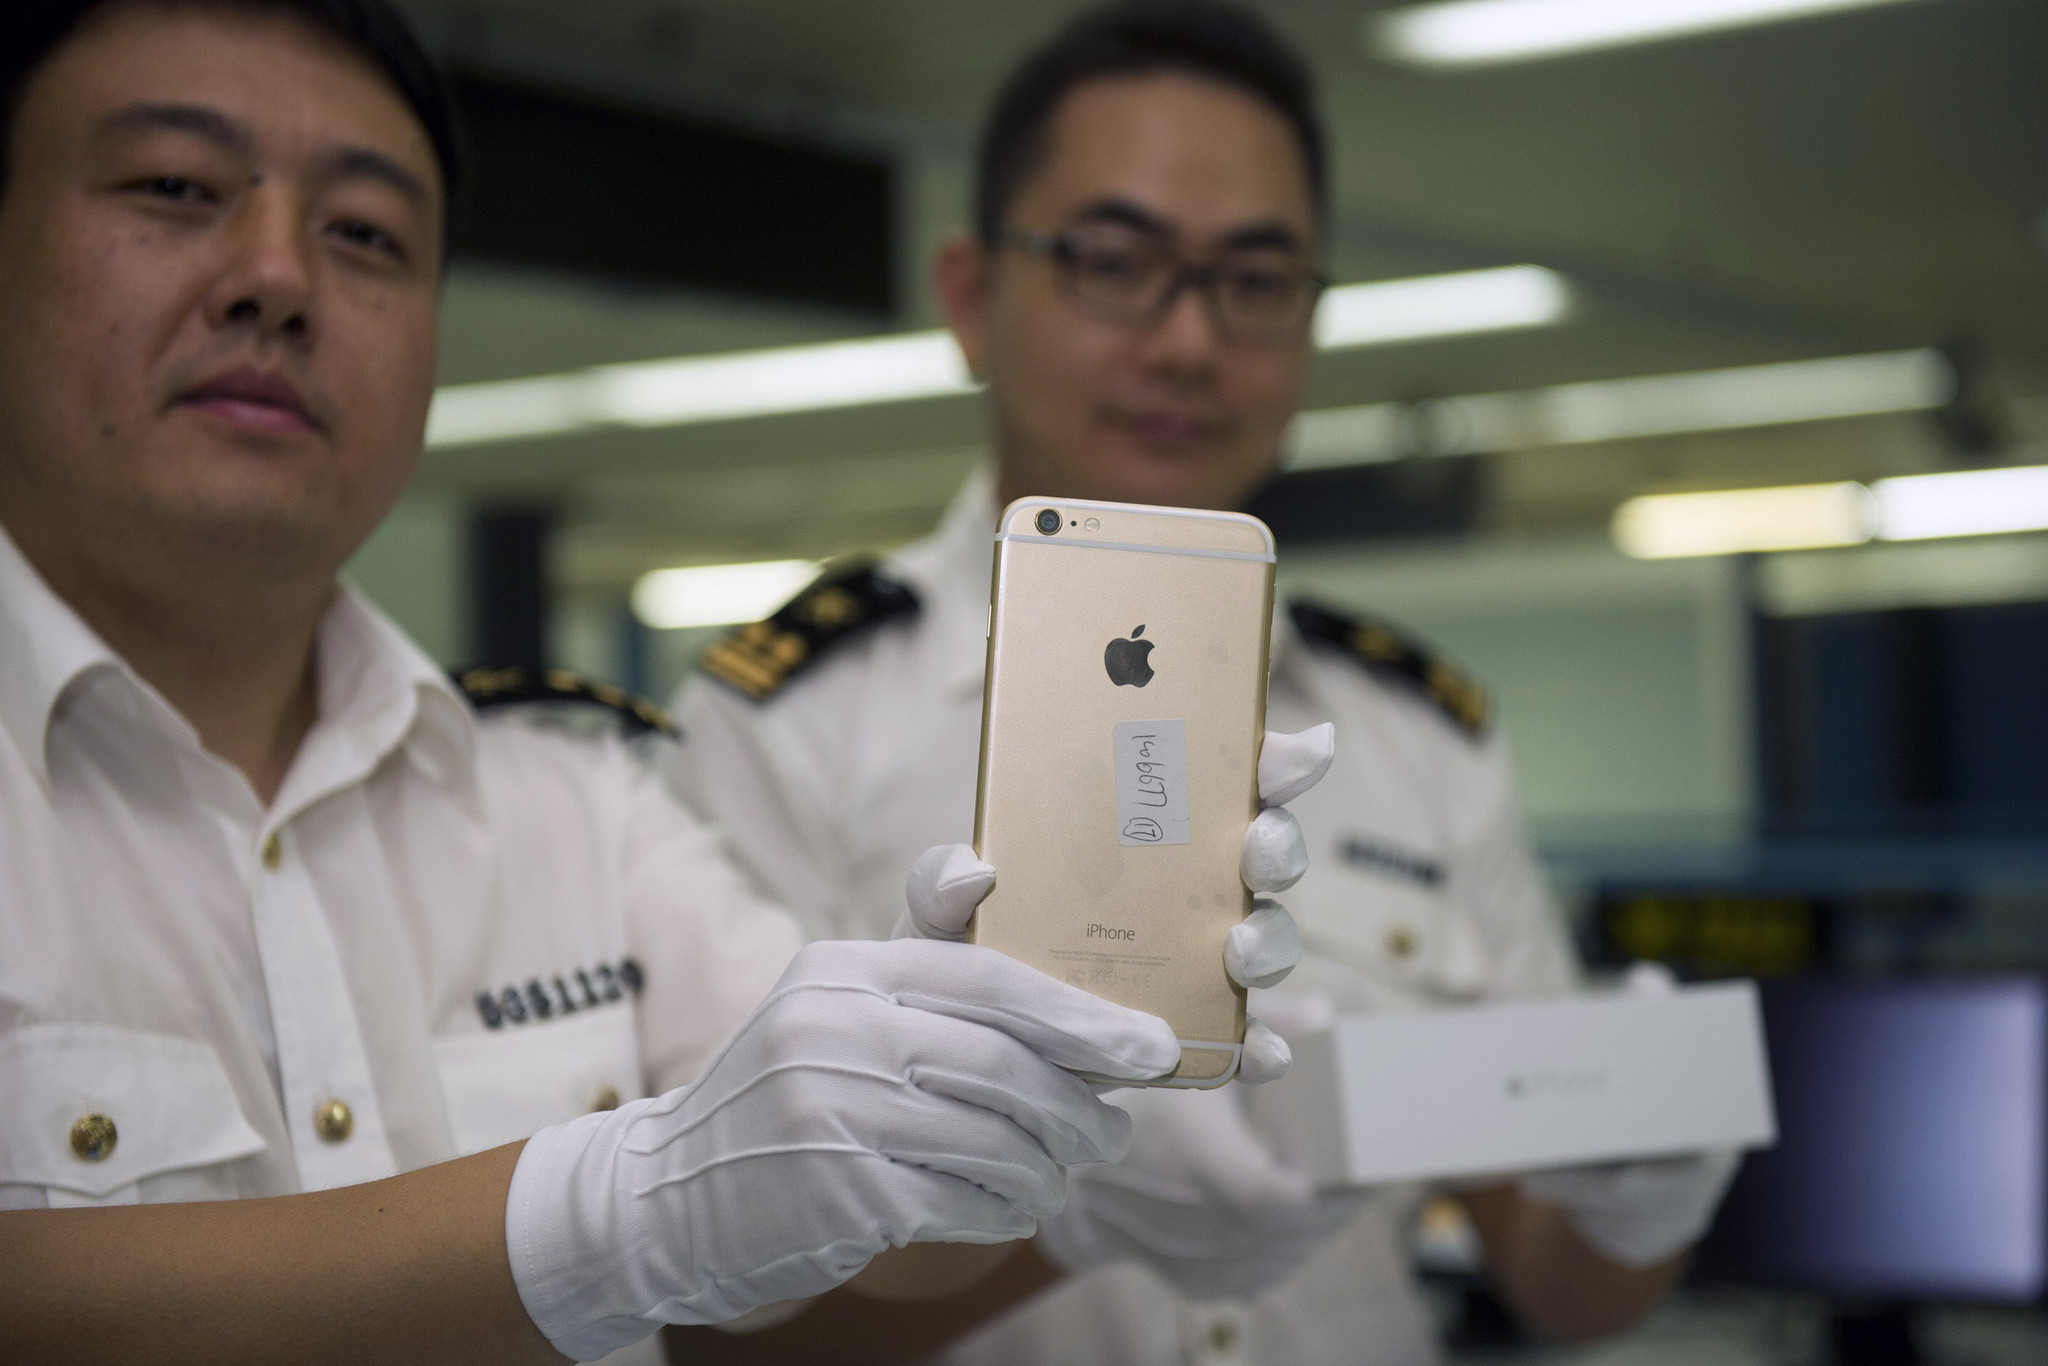 Apple's iPhone 6 clears hurdles in China, to hit mainland Oct. 17